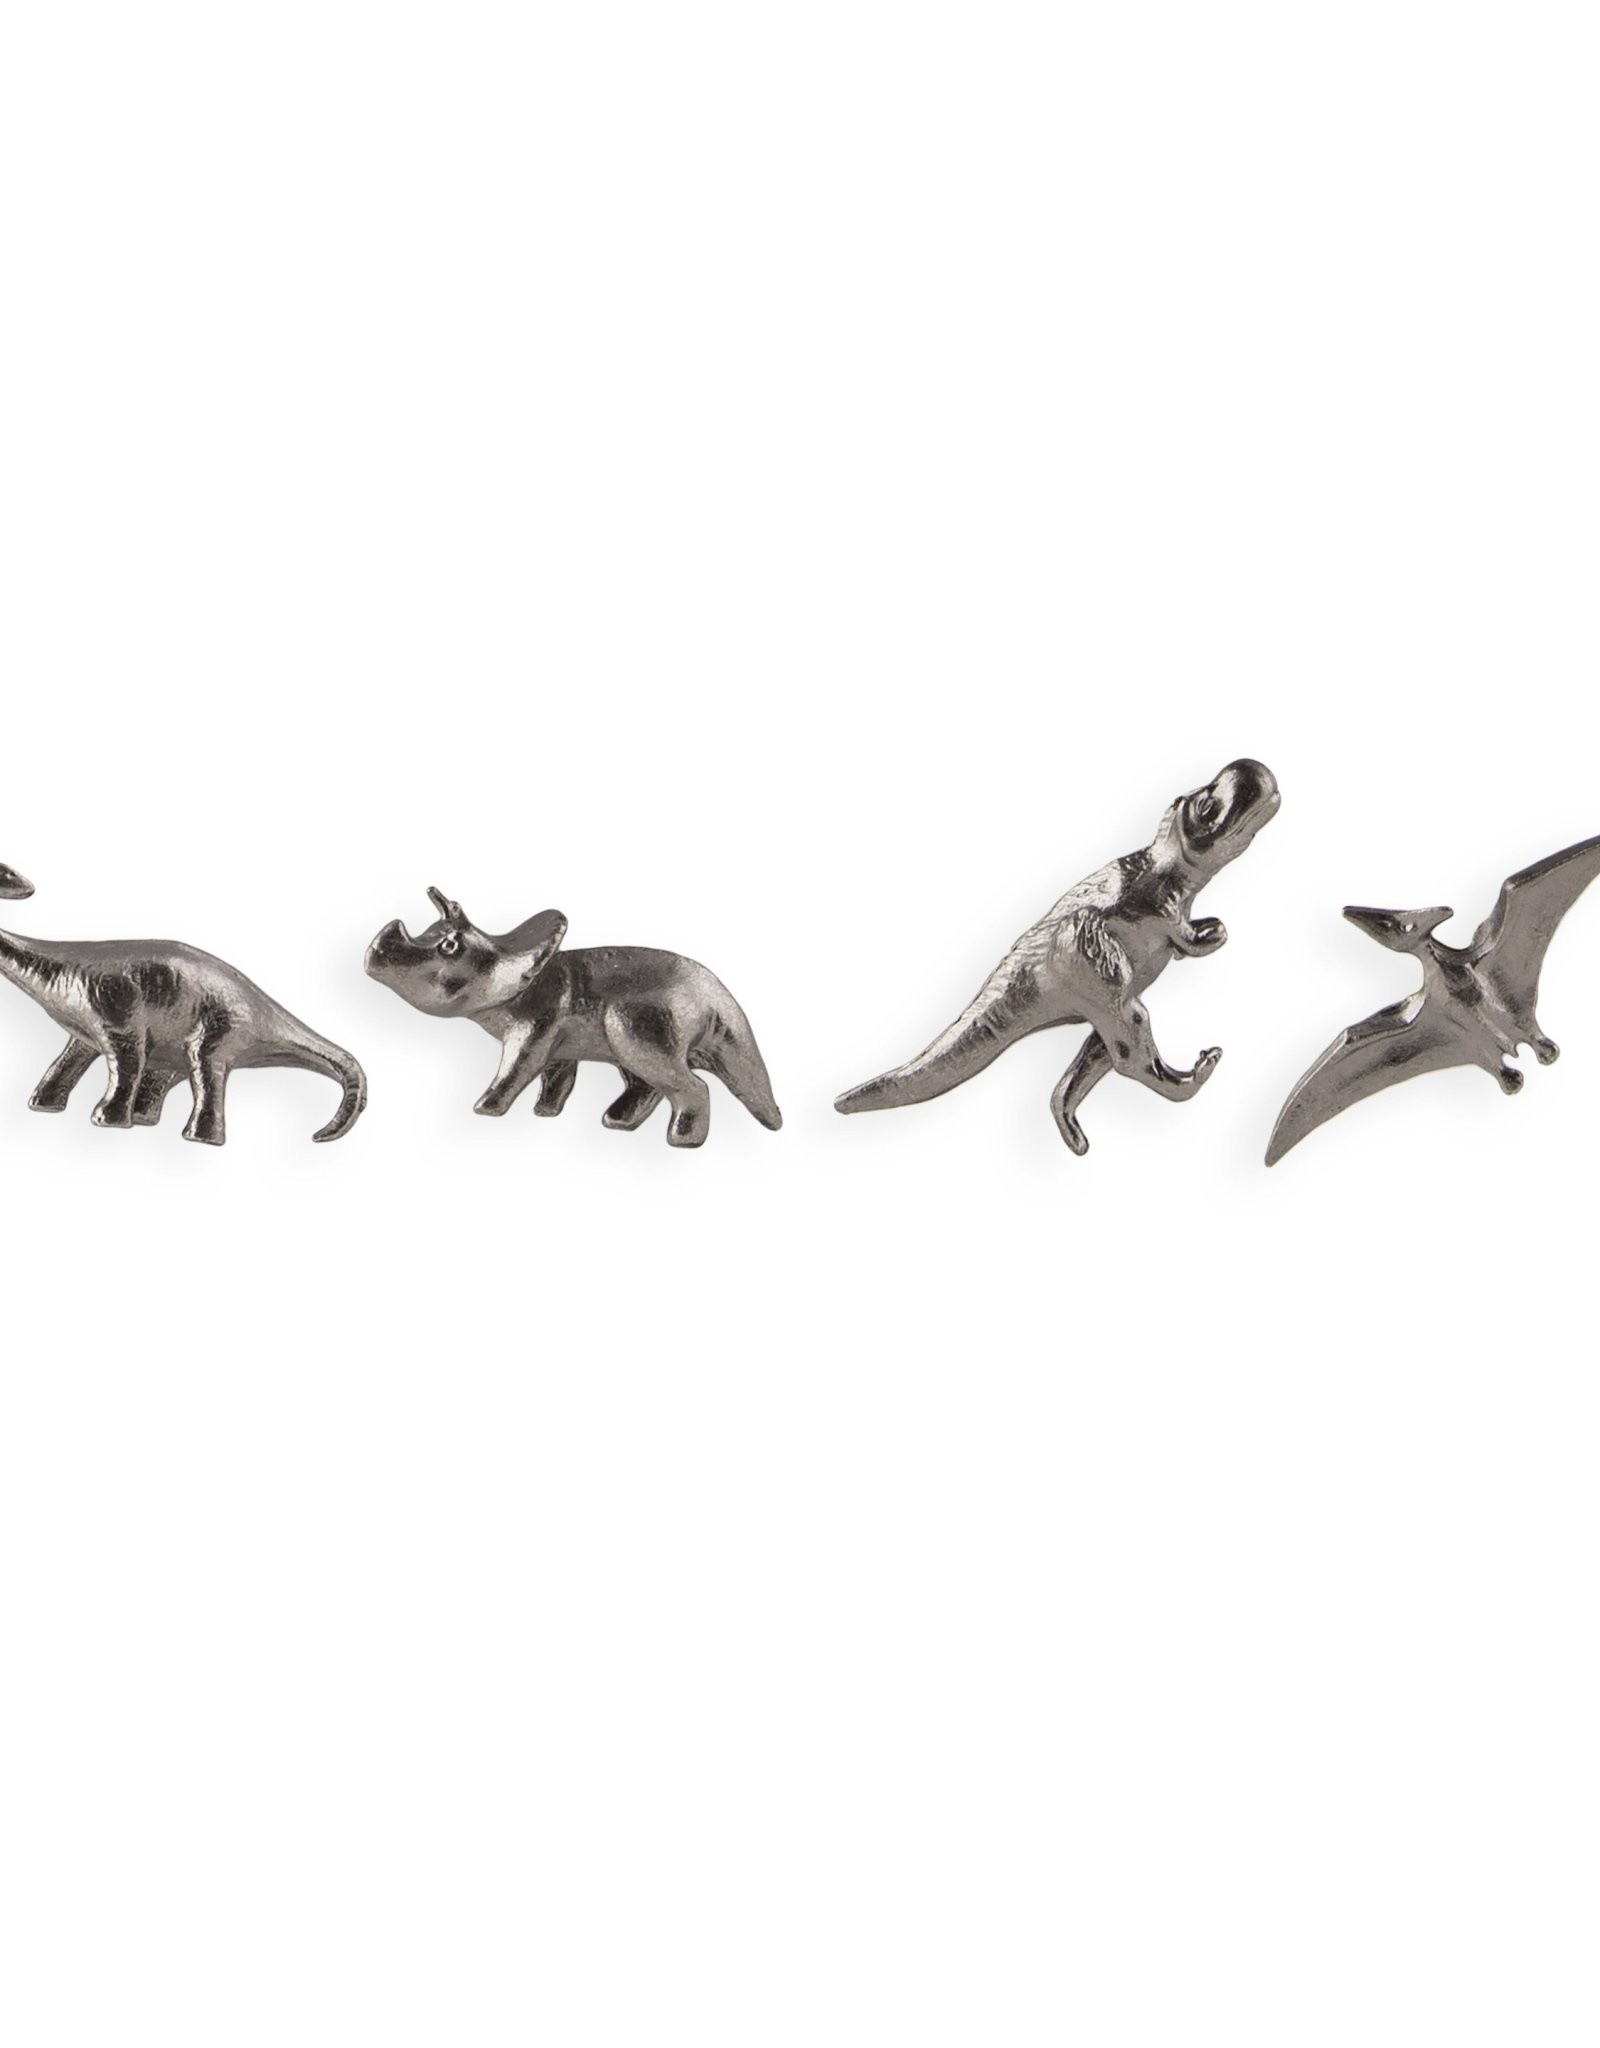 Three By Three Die Cast Creature Magnets 4 pk